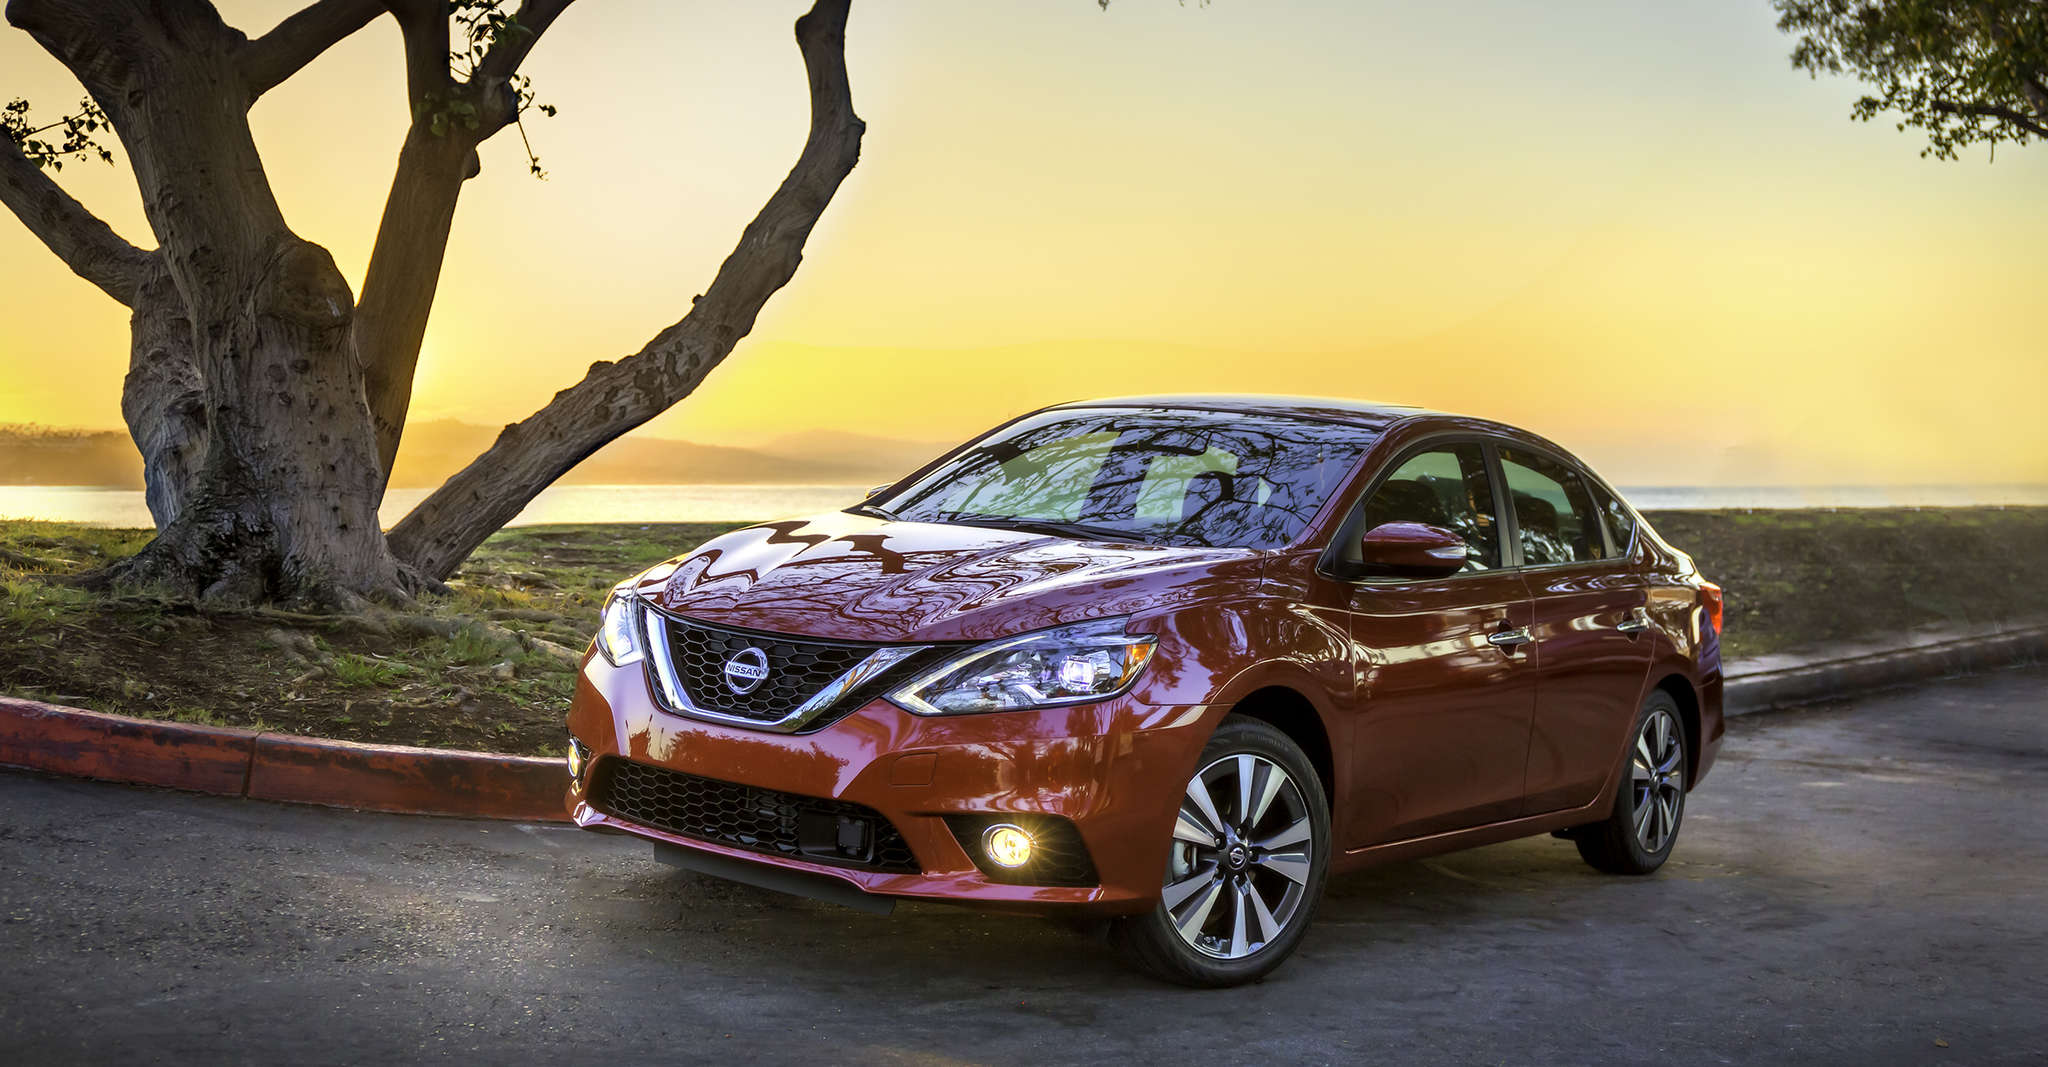 The Nissan Sentra gets a redesign for 2016, but performance from the 1.8-liter four-cylinder engine was sapped by the CVT.